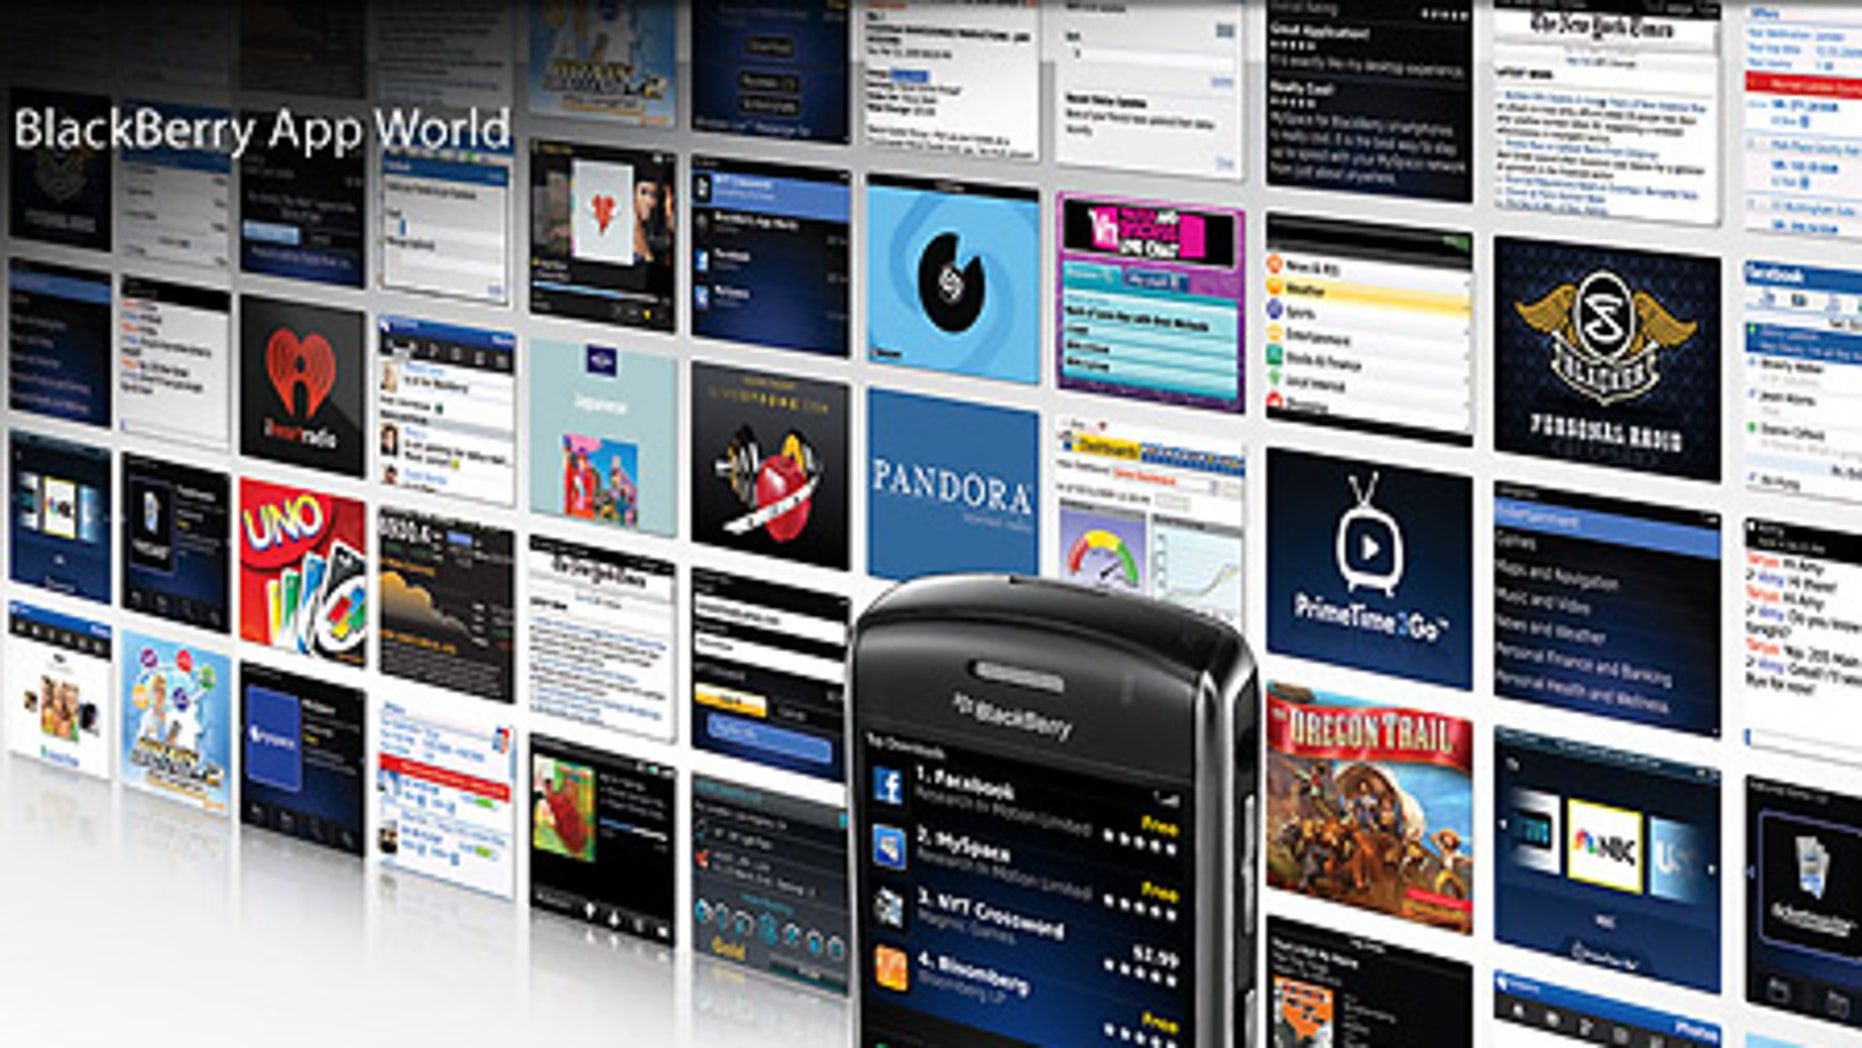 A Research In Motion photo illustration of a BlackBerry Curve 8900 and various BlackBerry App World screens.